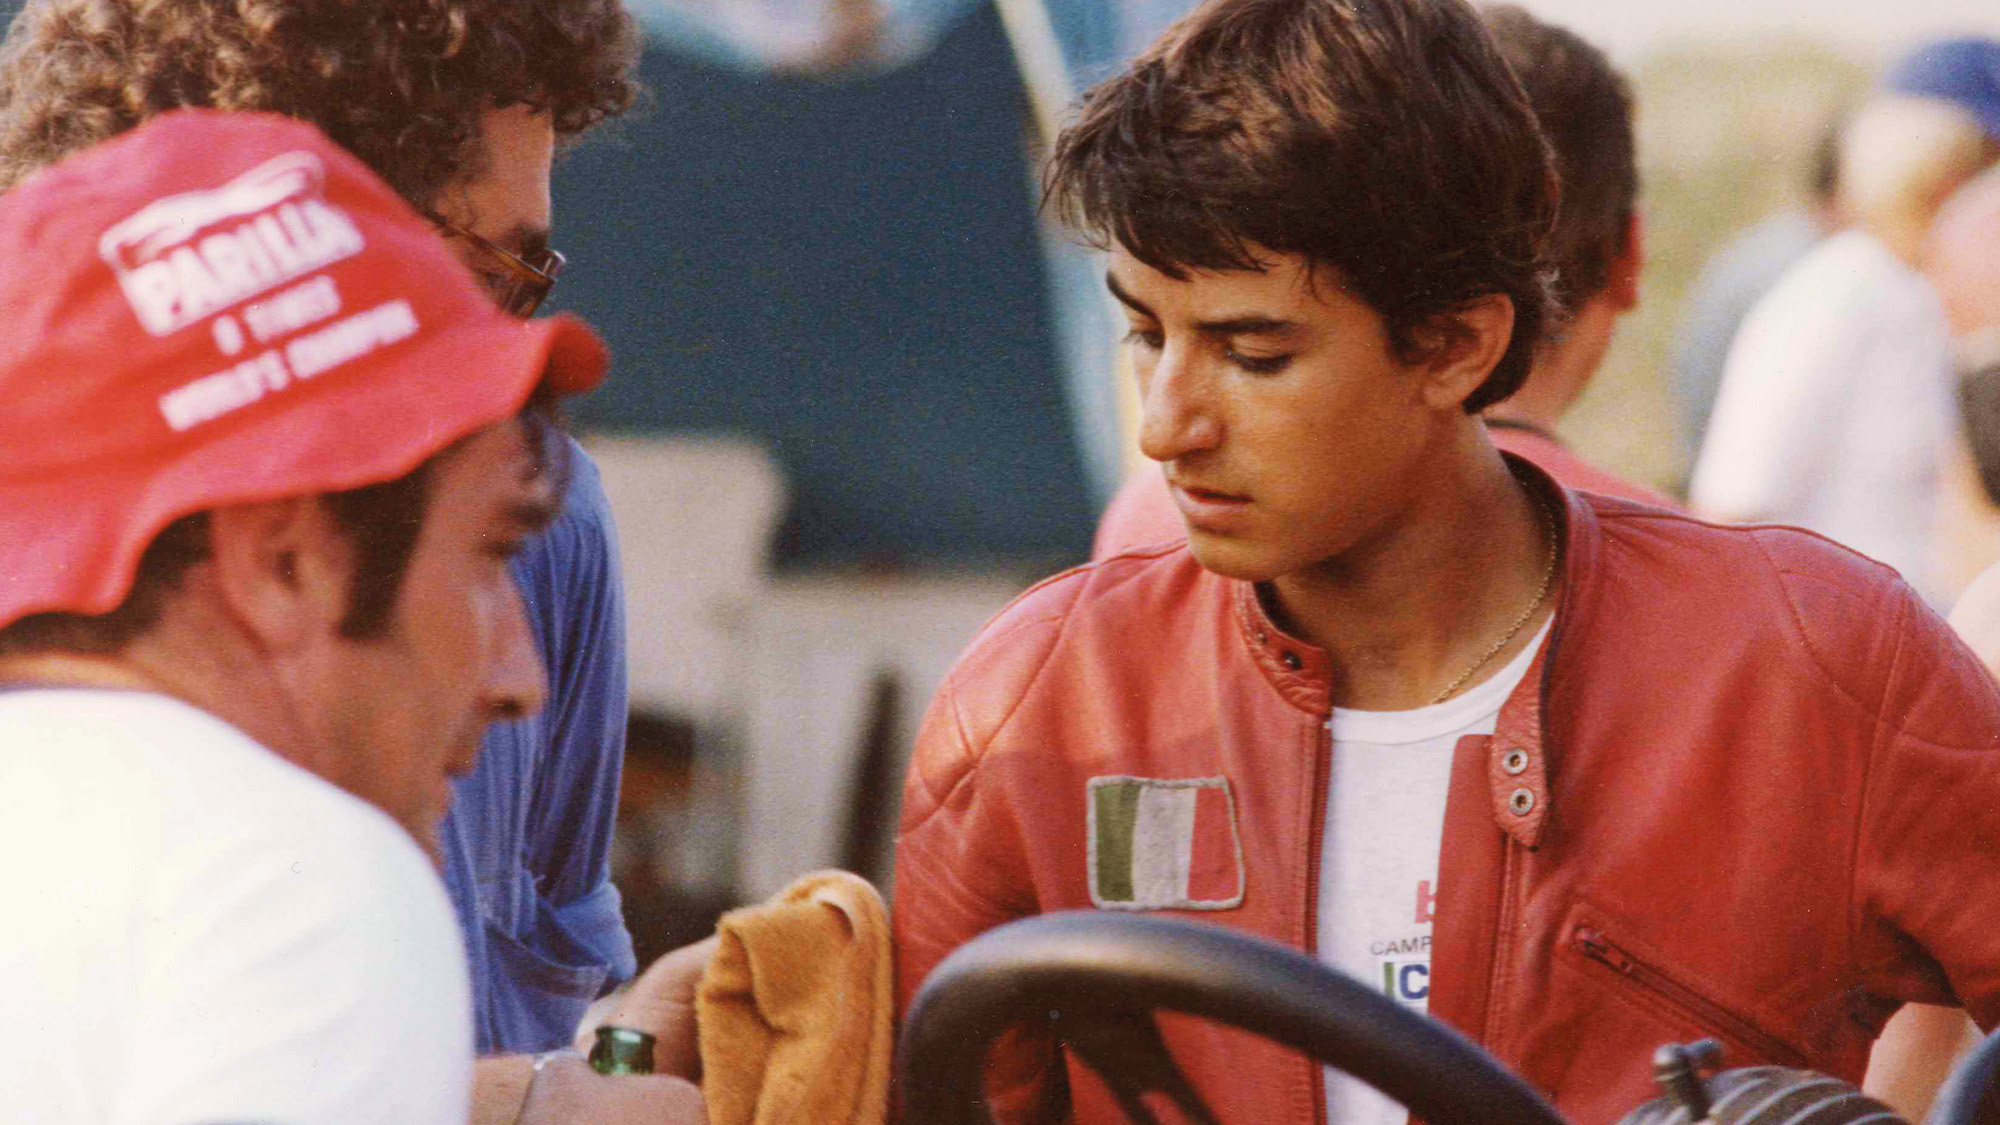 Ivan Capelli during his karting days